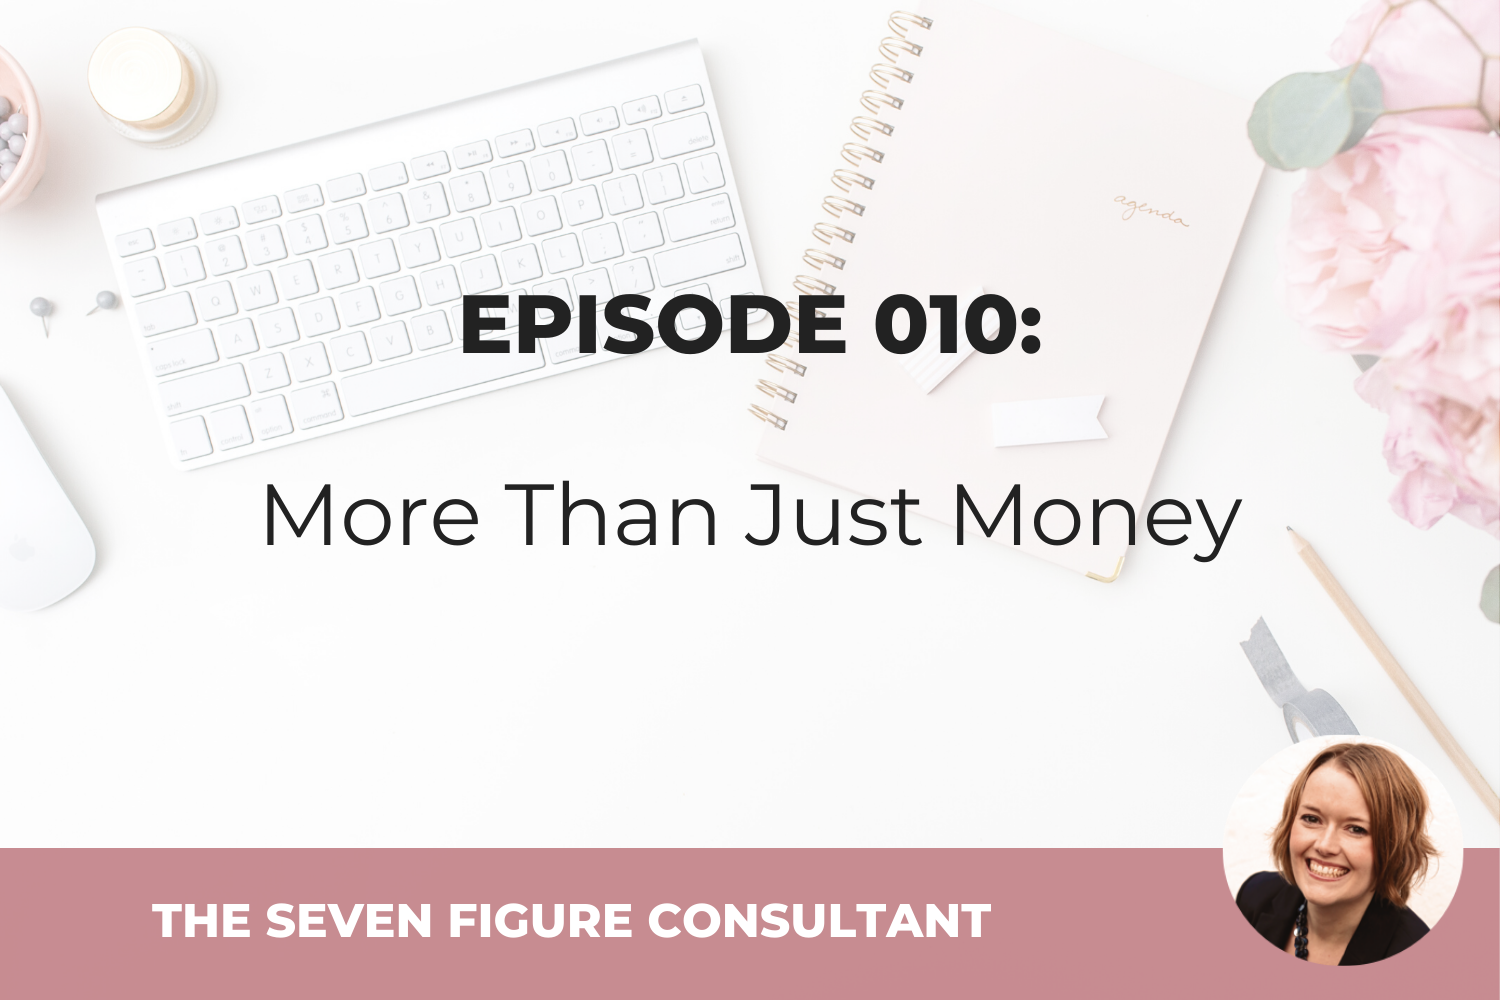 Episode 010: More Than Just Money